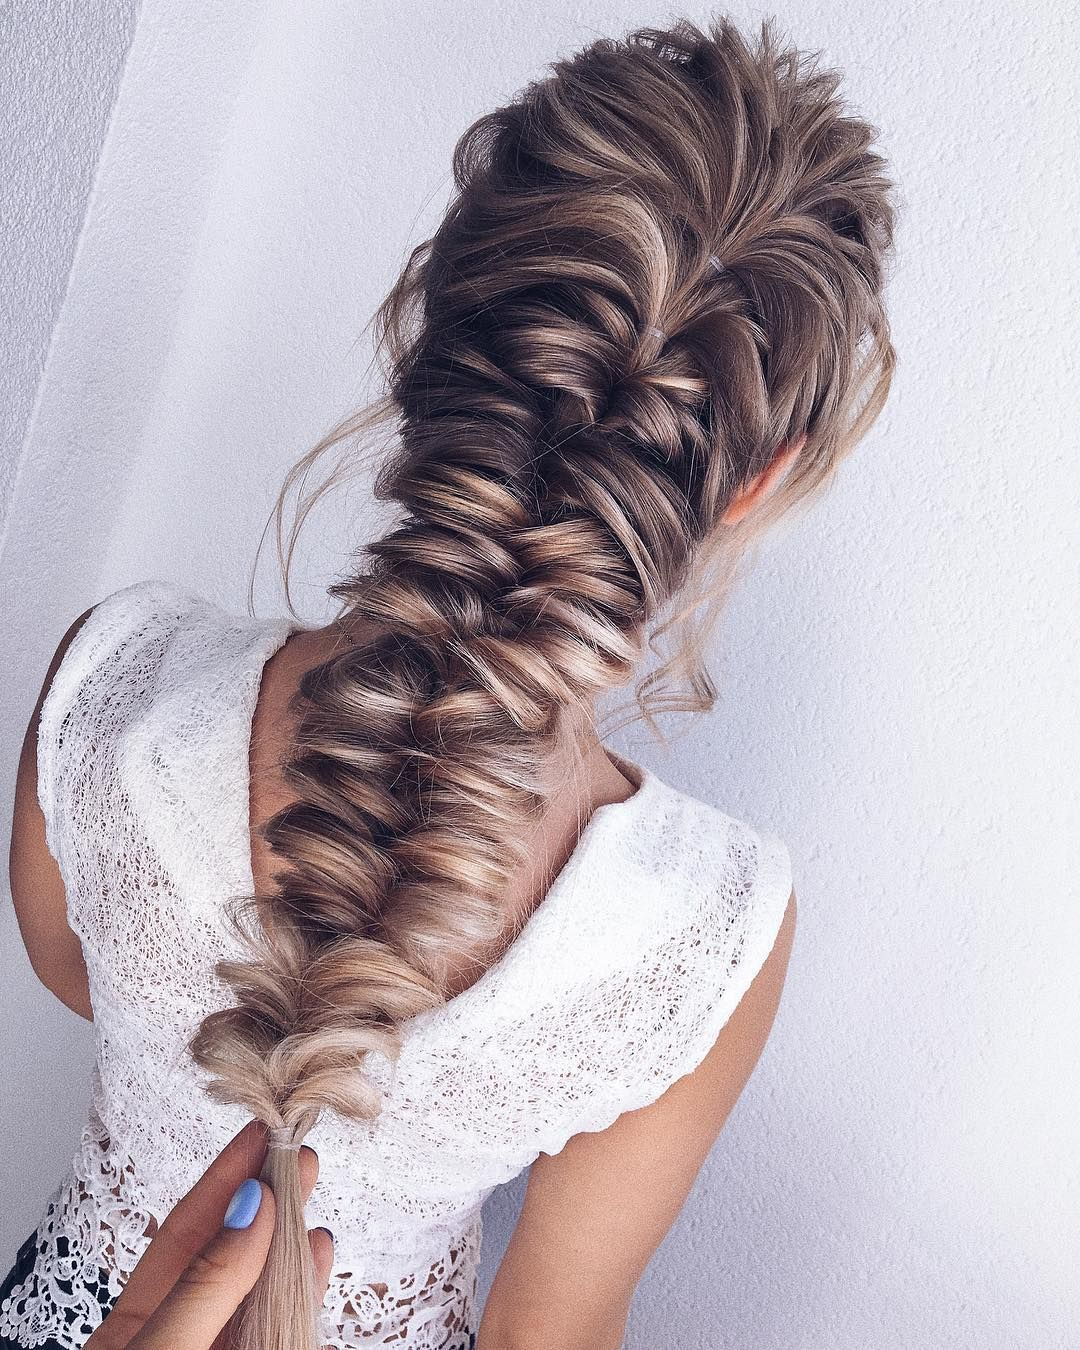 52 Beautiful Hairstyle Inspiration Braids Hairstyles Braided Ponytails Textured Braids Ha Elegant Wedding Hair Short Hair Styles Easy Braided Hairstyles